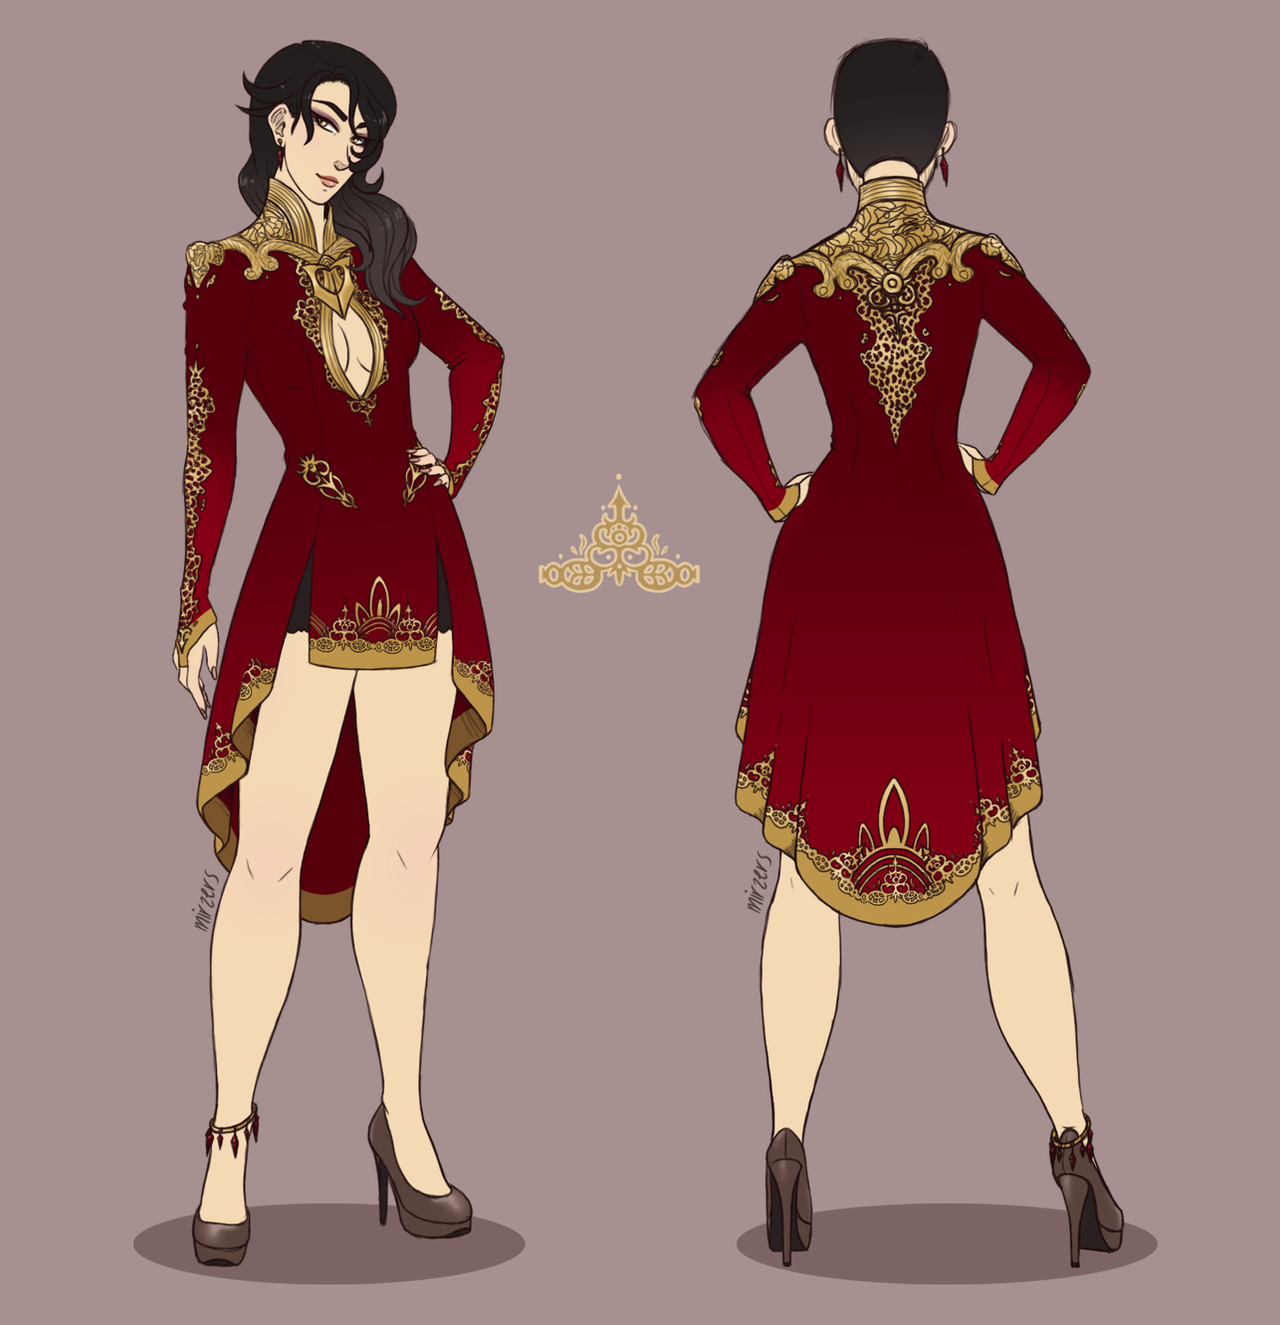 Rwby Cinder on emerald rwby vol 4